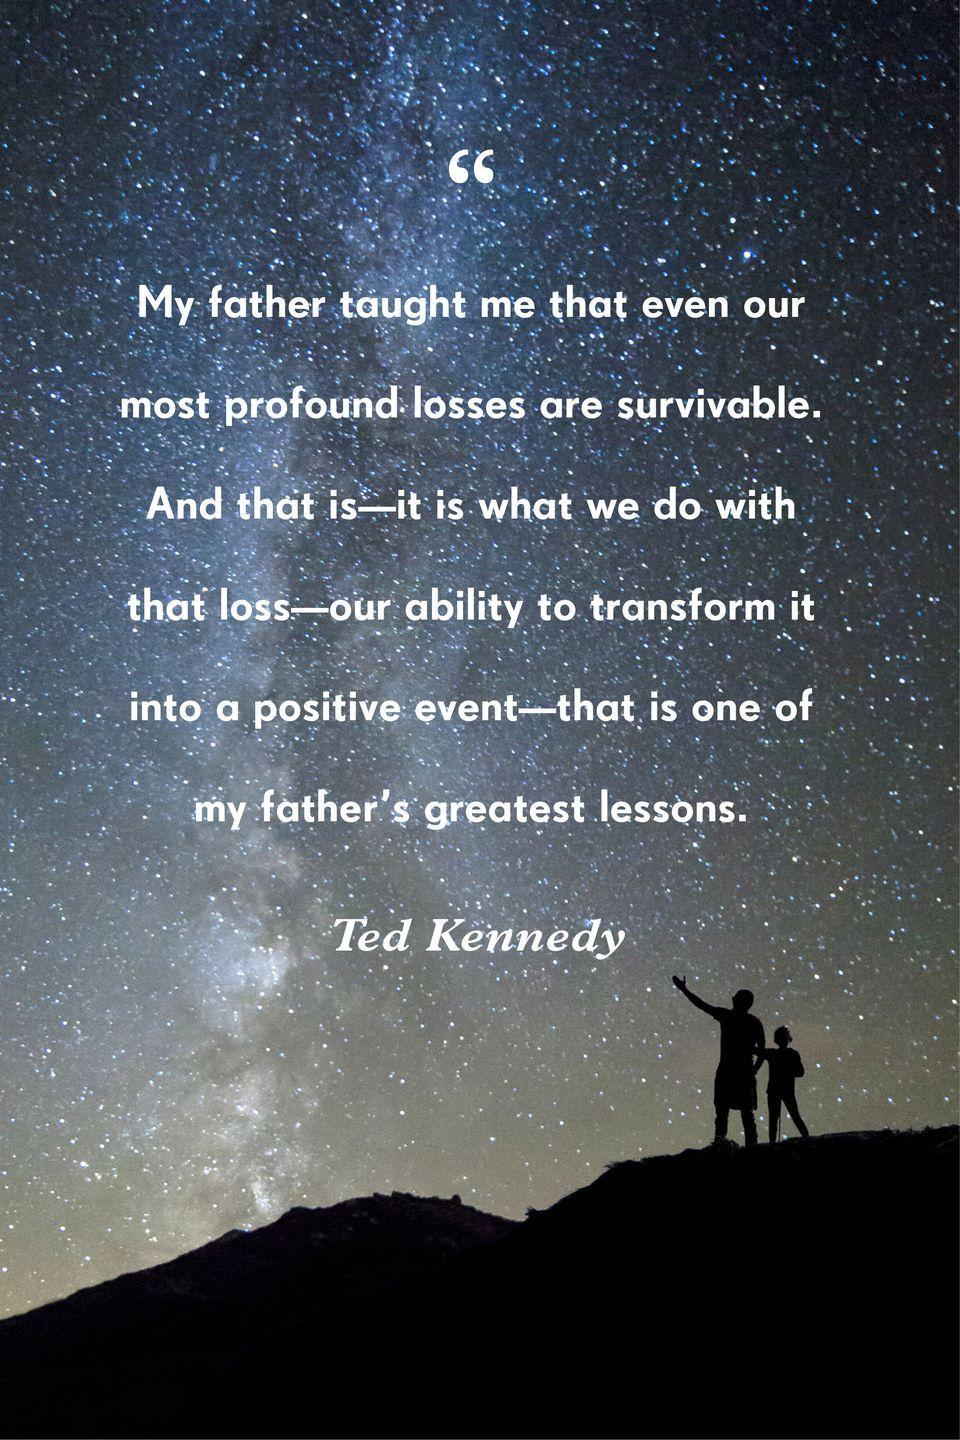 """<p>""""You see, my father taught me that even our most profound losses are survivable. And that is—it is what we do with that loss—our ability to transform it into a positive event—that is one of my father's greatest lessons.""""</p>"""